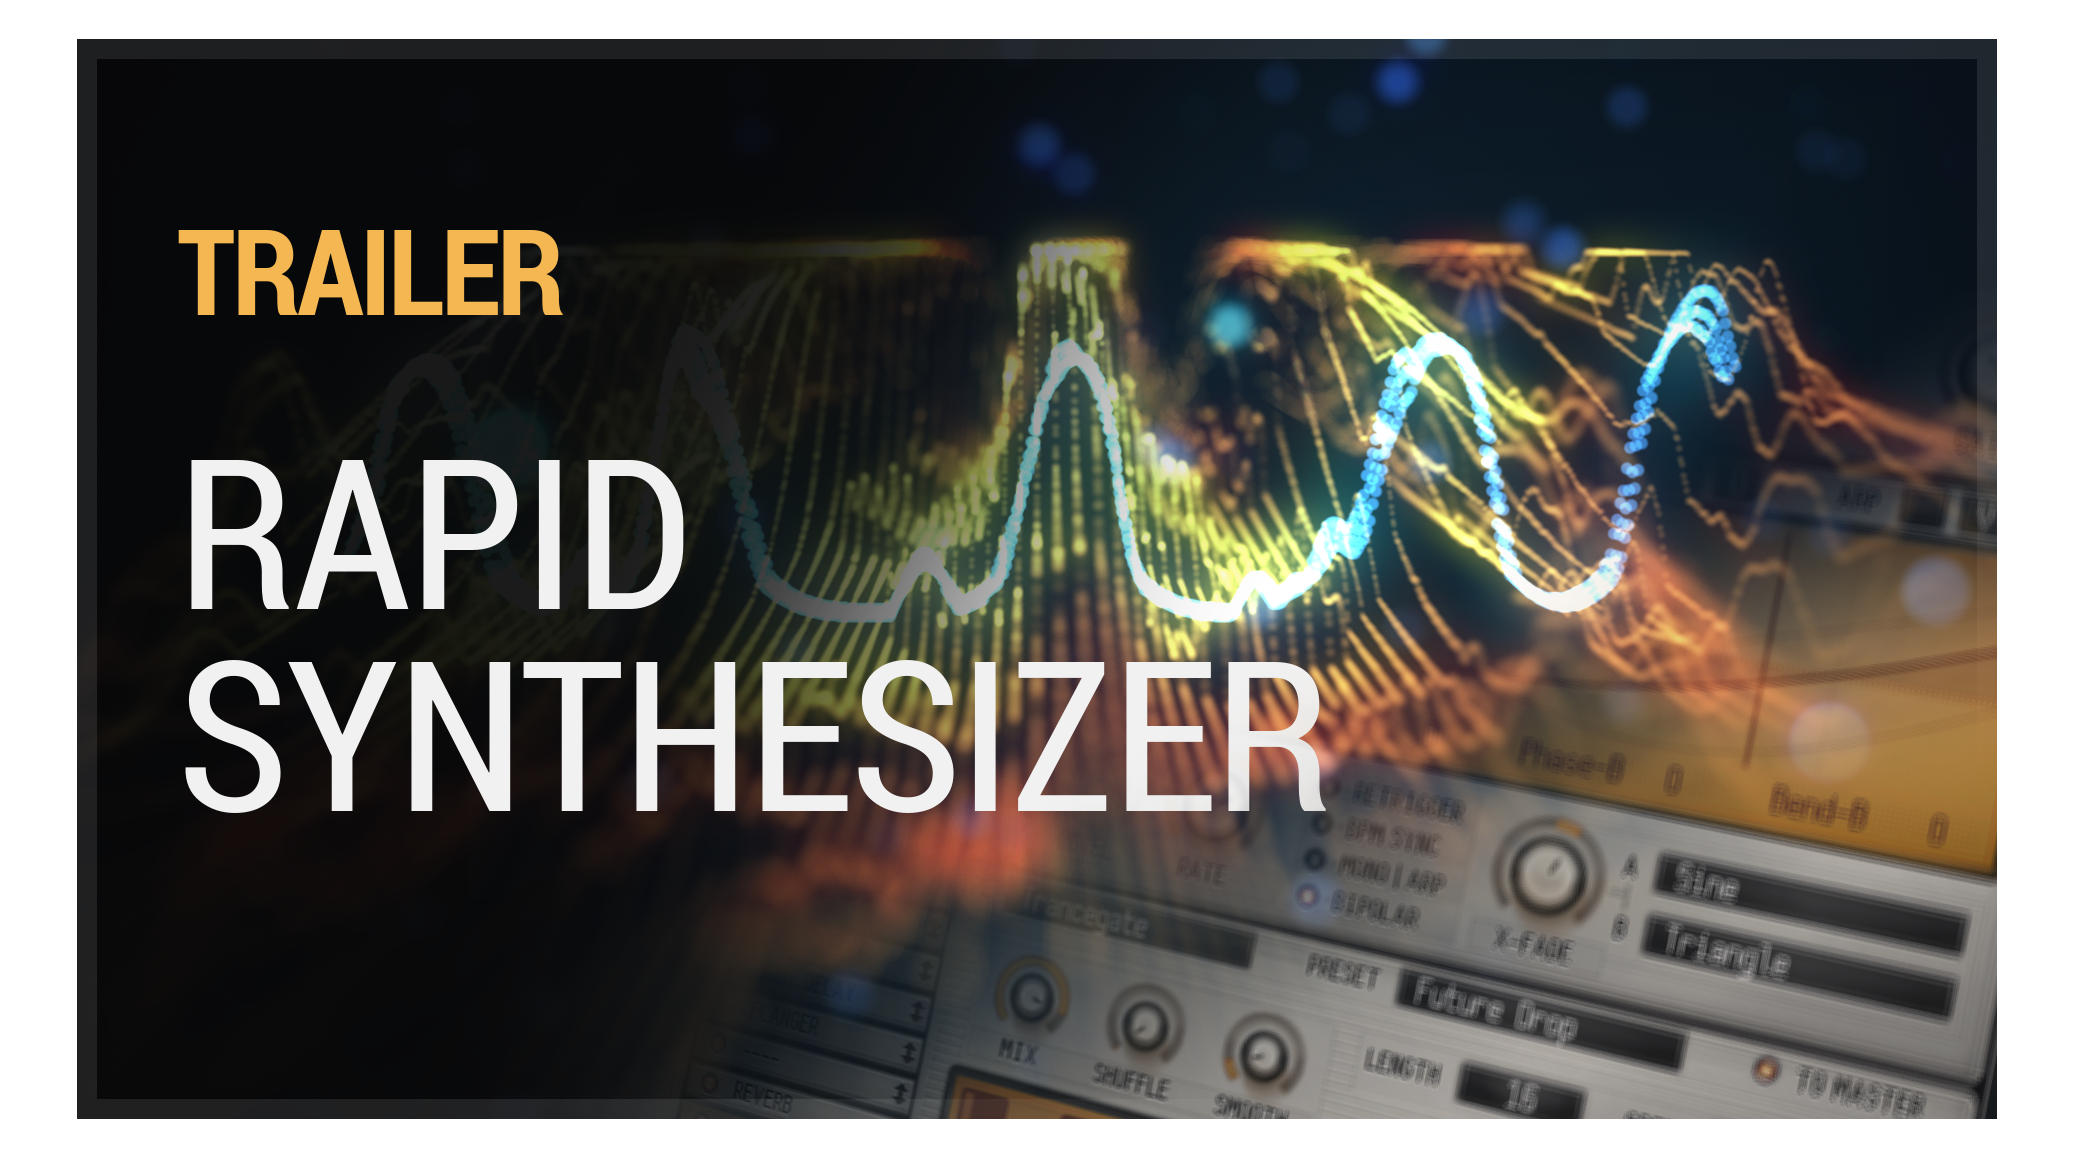 RAPID Synthesizer - Trailer